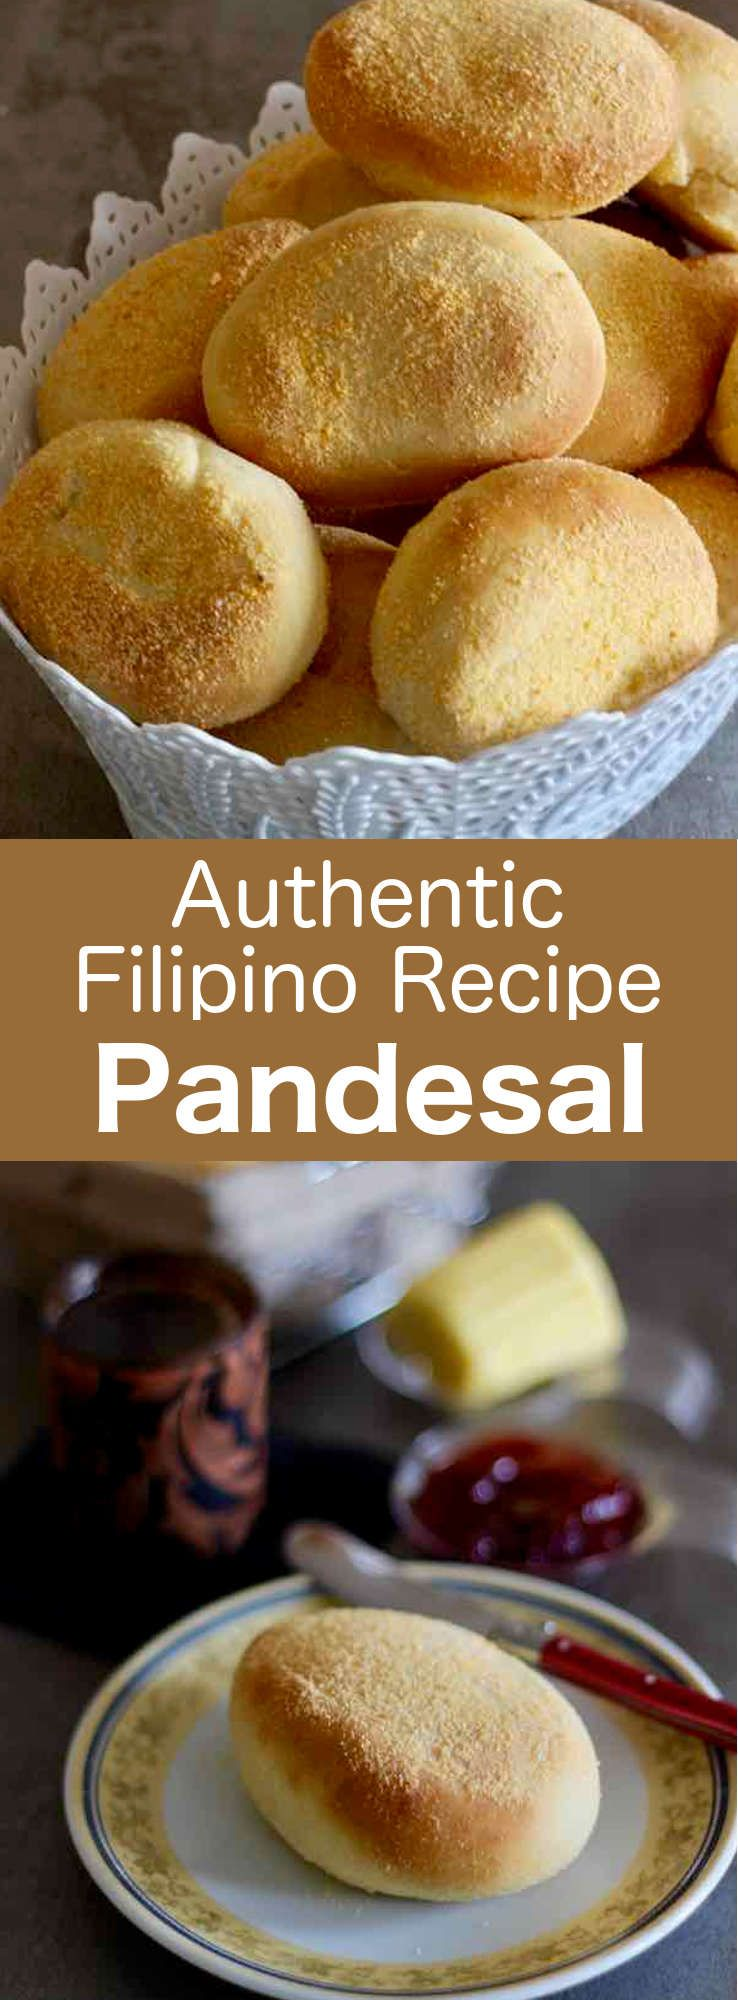 Pandesal or pan de sal is the famous little bread roll from the Philippines. It is airy and slightly sweet. #Philippines #196flavors